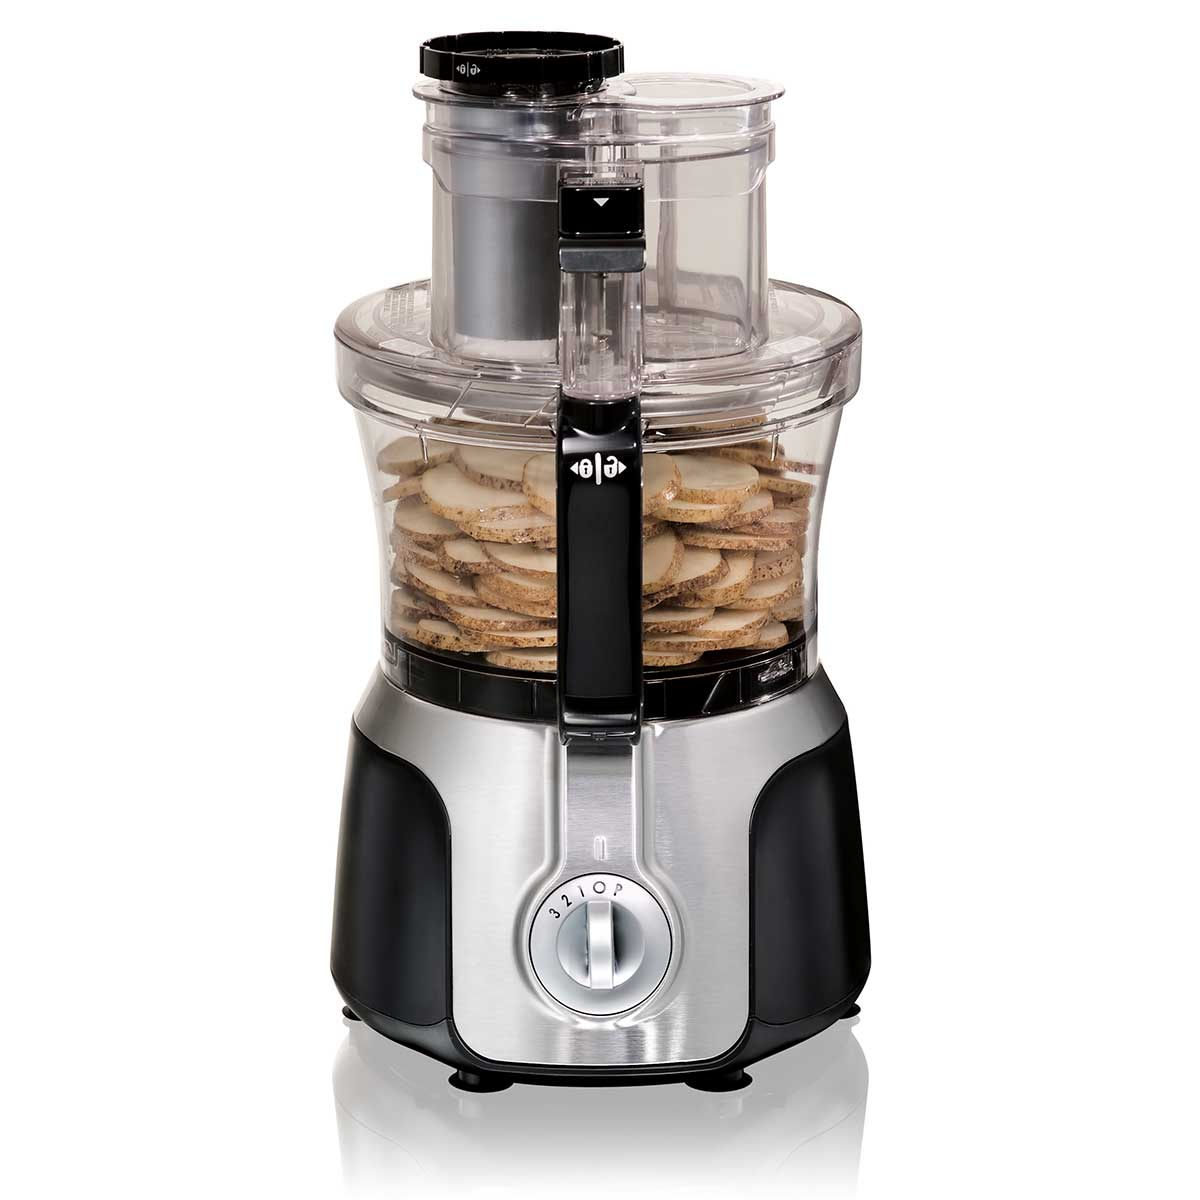 14-Cup Big Mouth® Duo Food Processor with 2 Bowls and 3 Speeds, Black & Silver (70579)